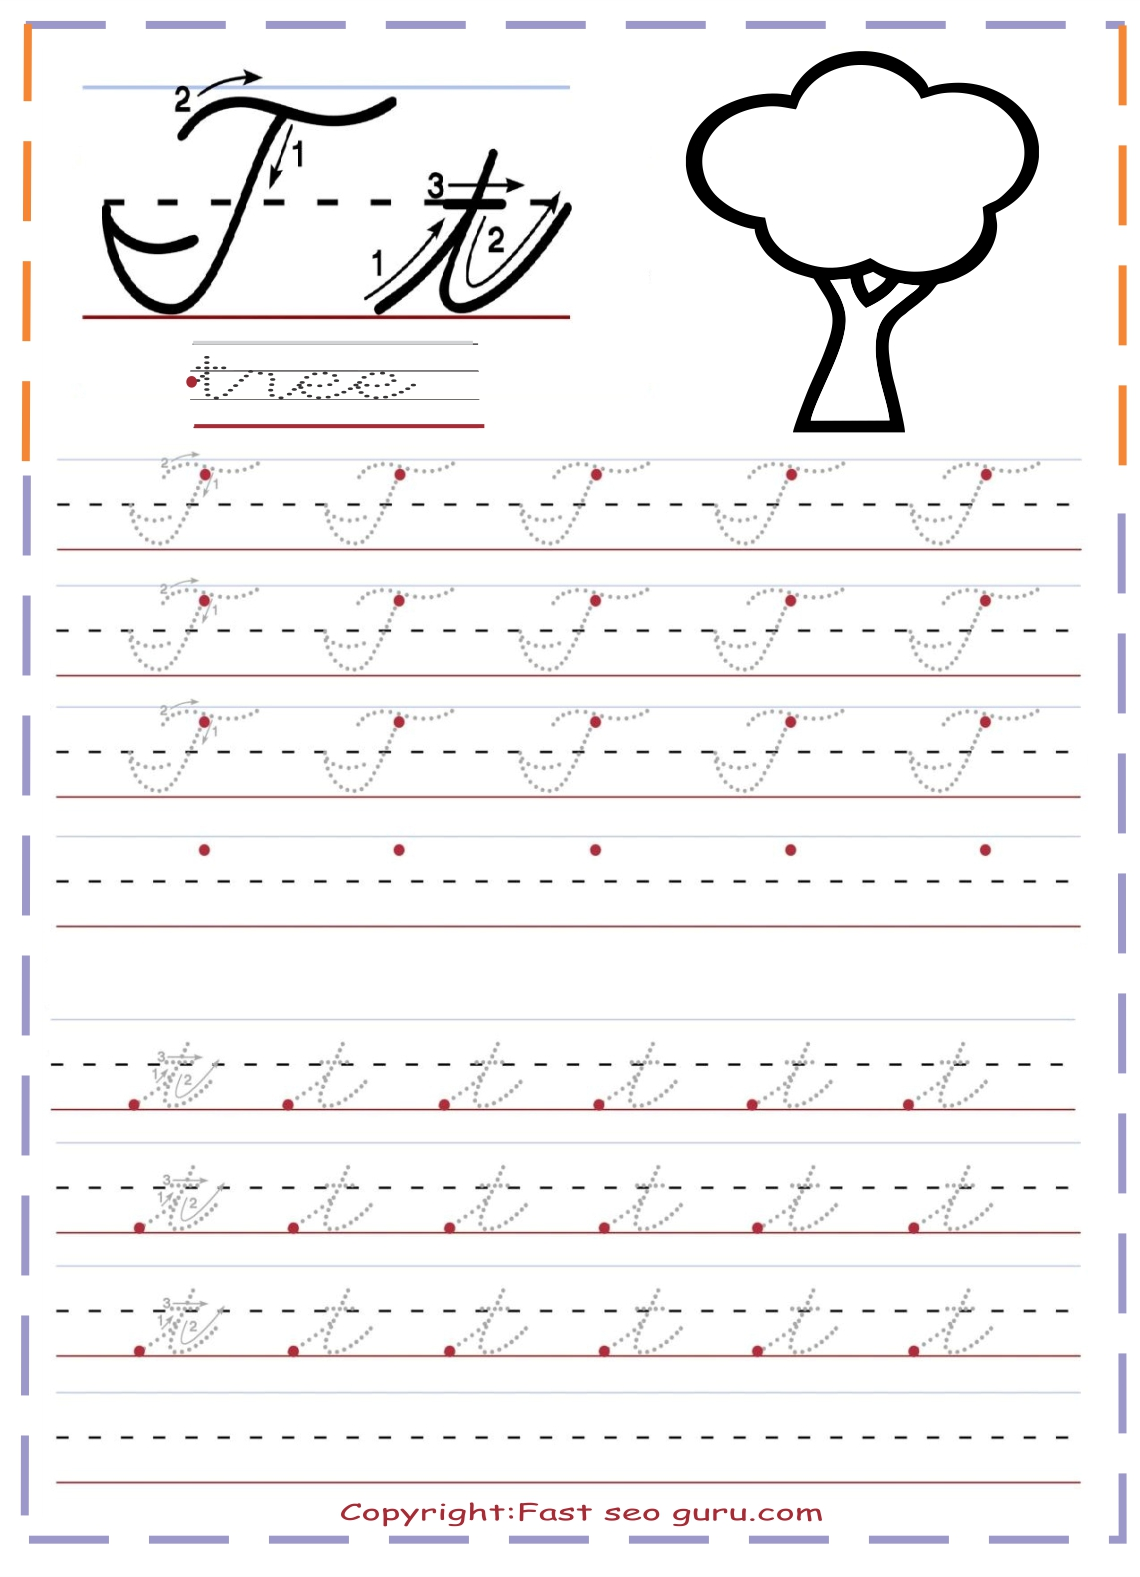 Lowercase Letter T Tracing Worksheet